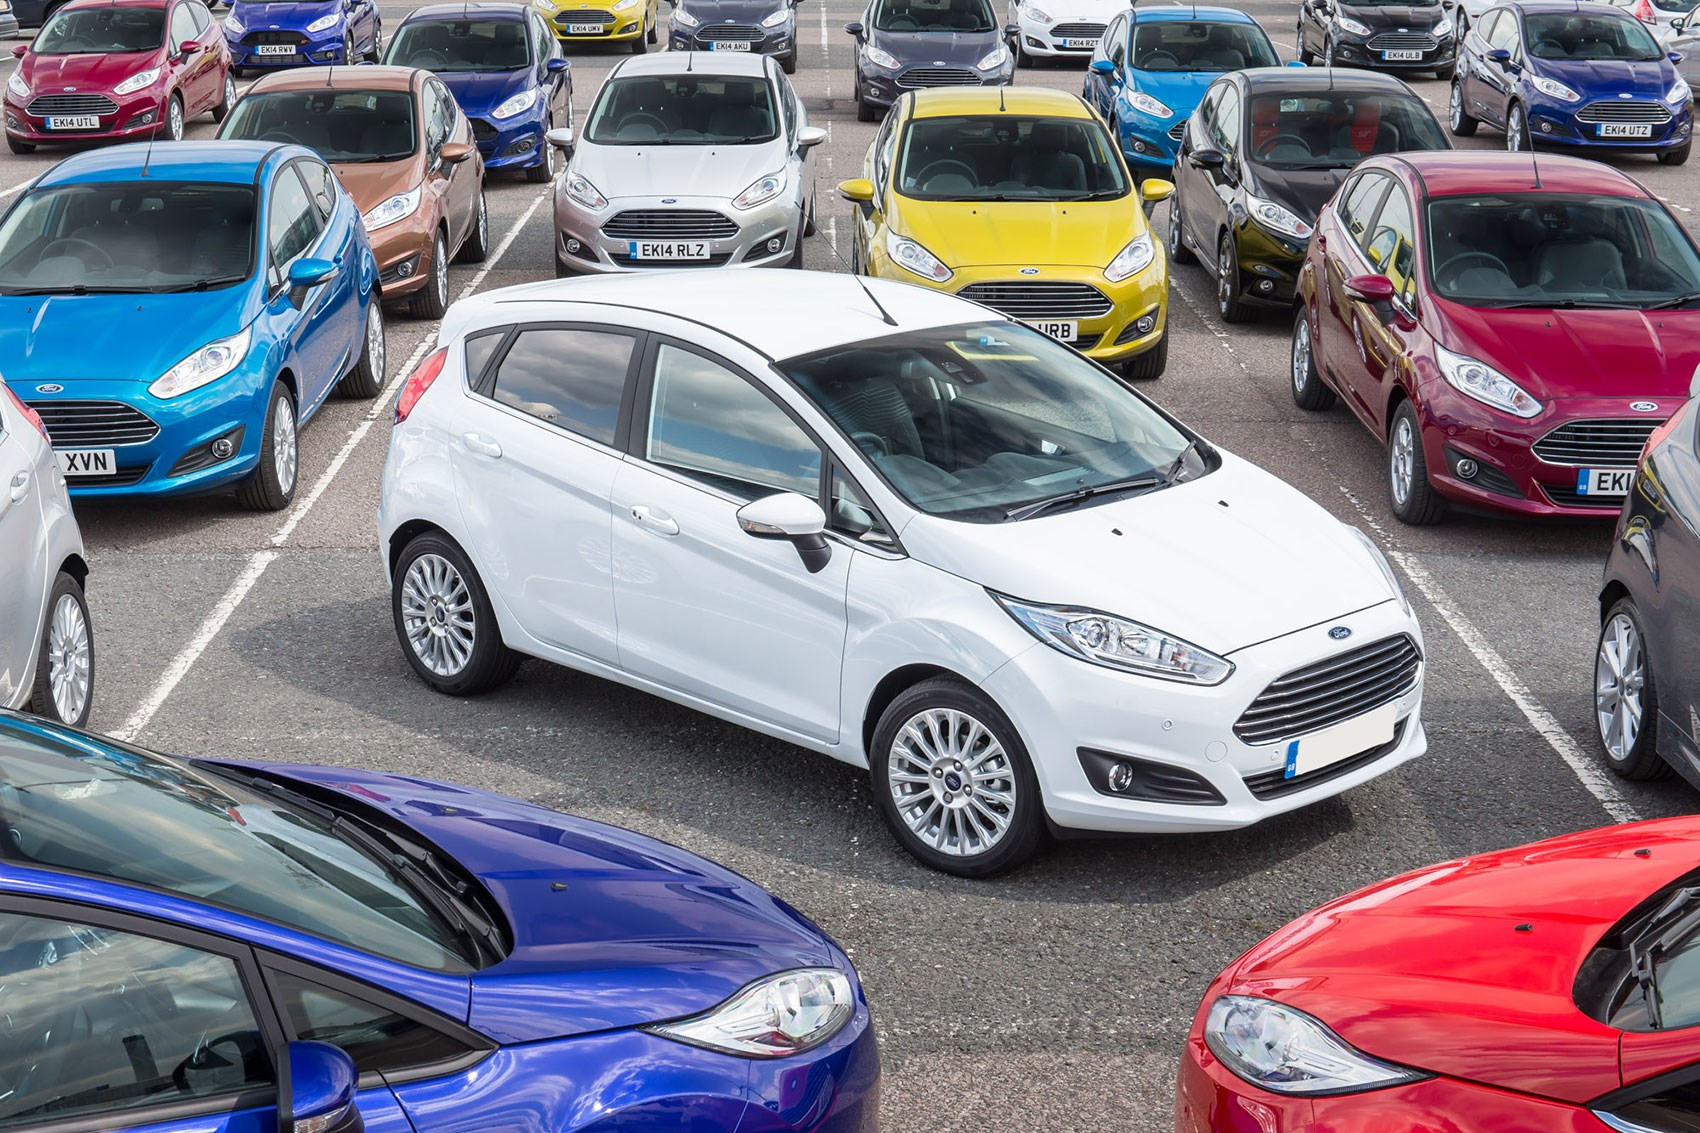 New 16 Reg Smashes All Sales Records For Uk Car Registrations Car